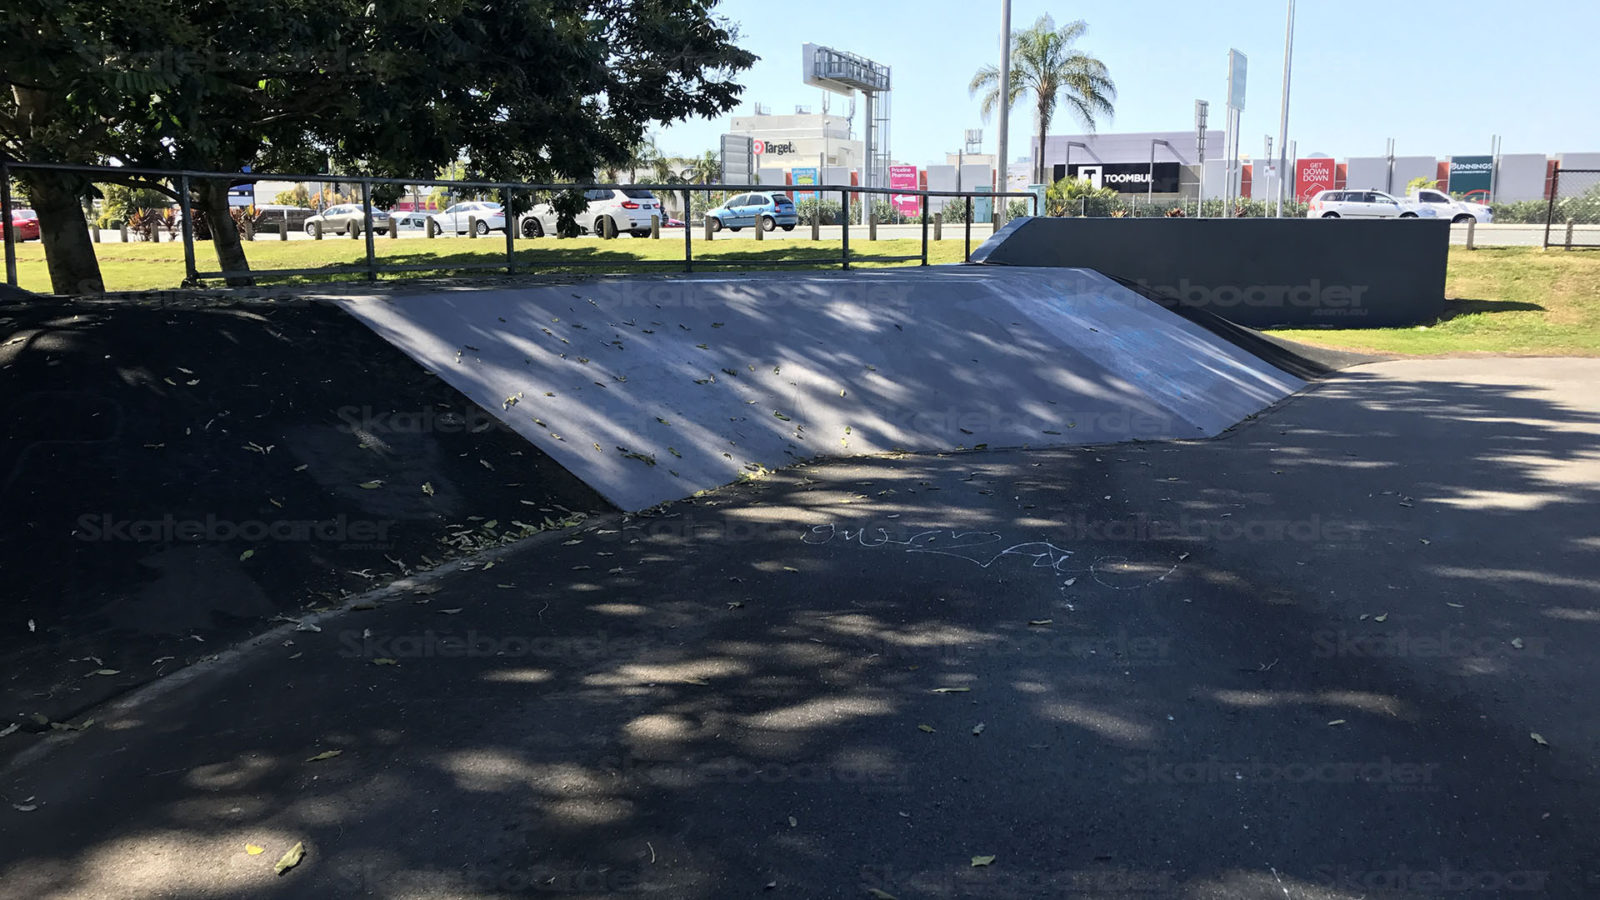 More of Toombul Skate Park